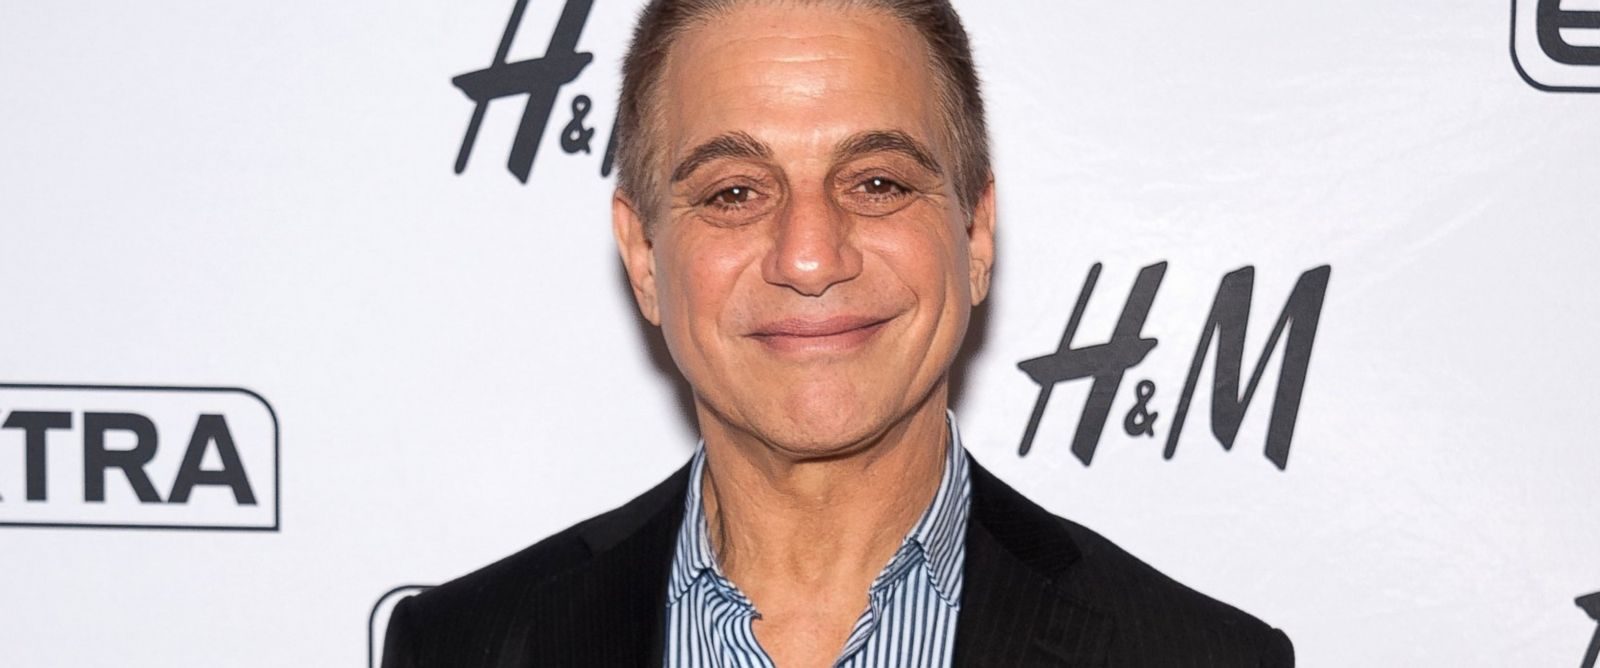 Tony Danza Wallpapers